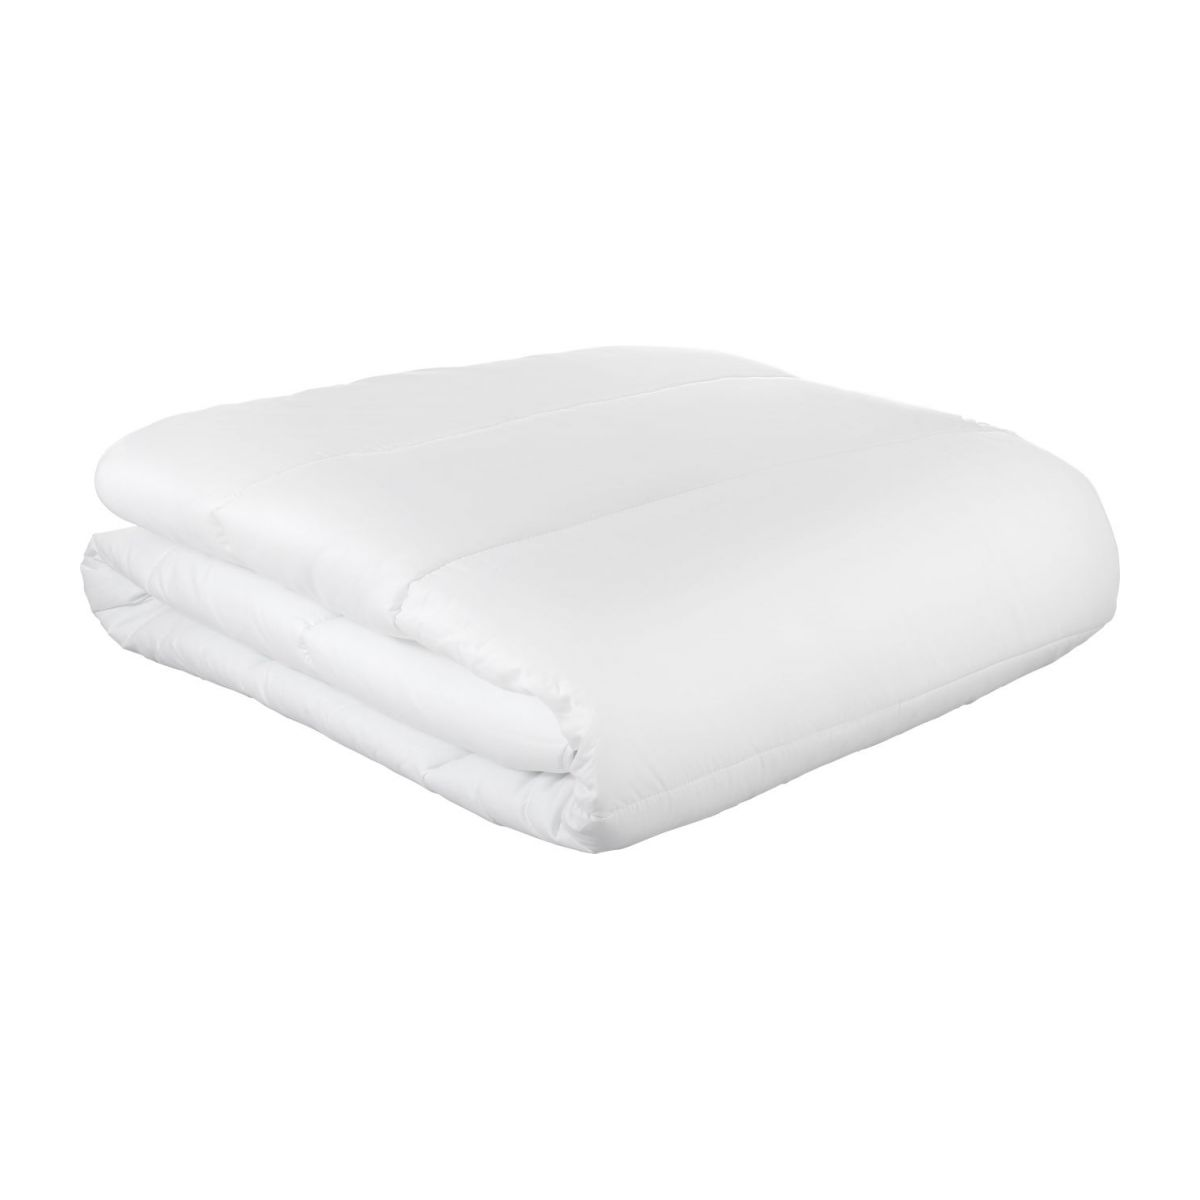 Couette 240x220cm, 300g blanche n°4